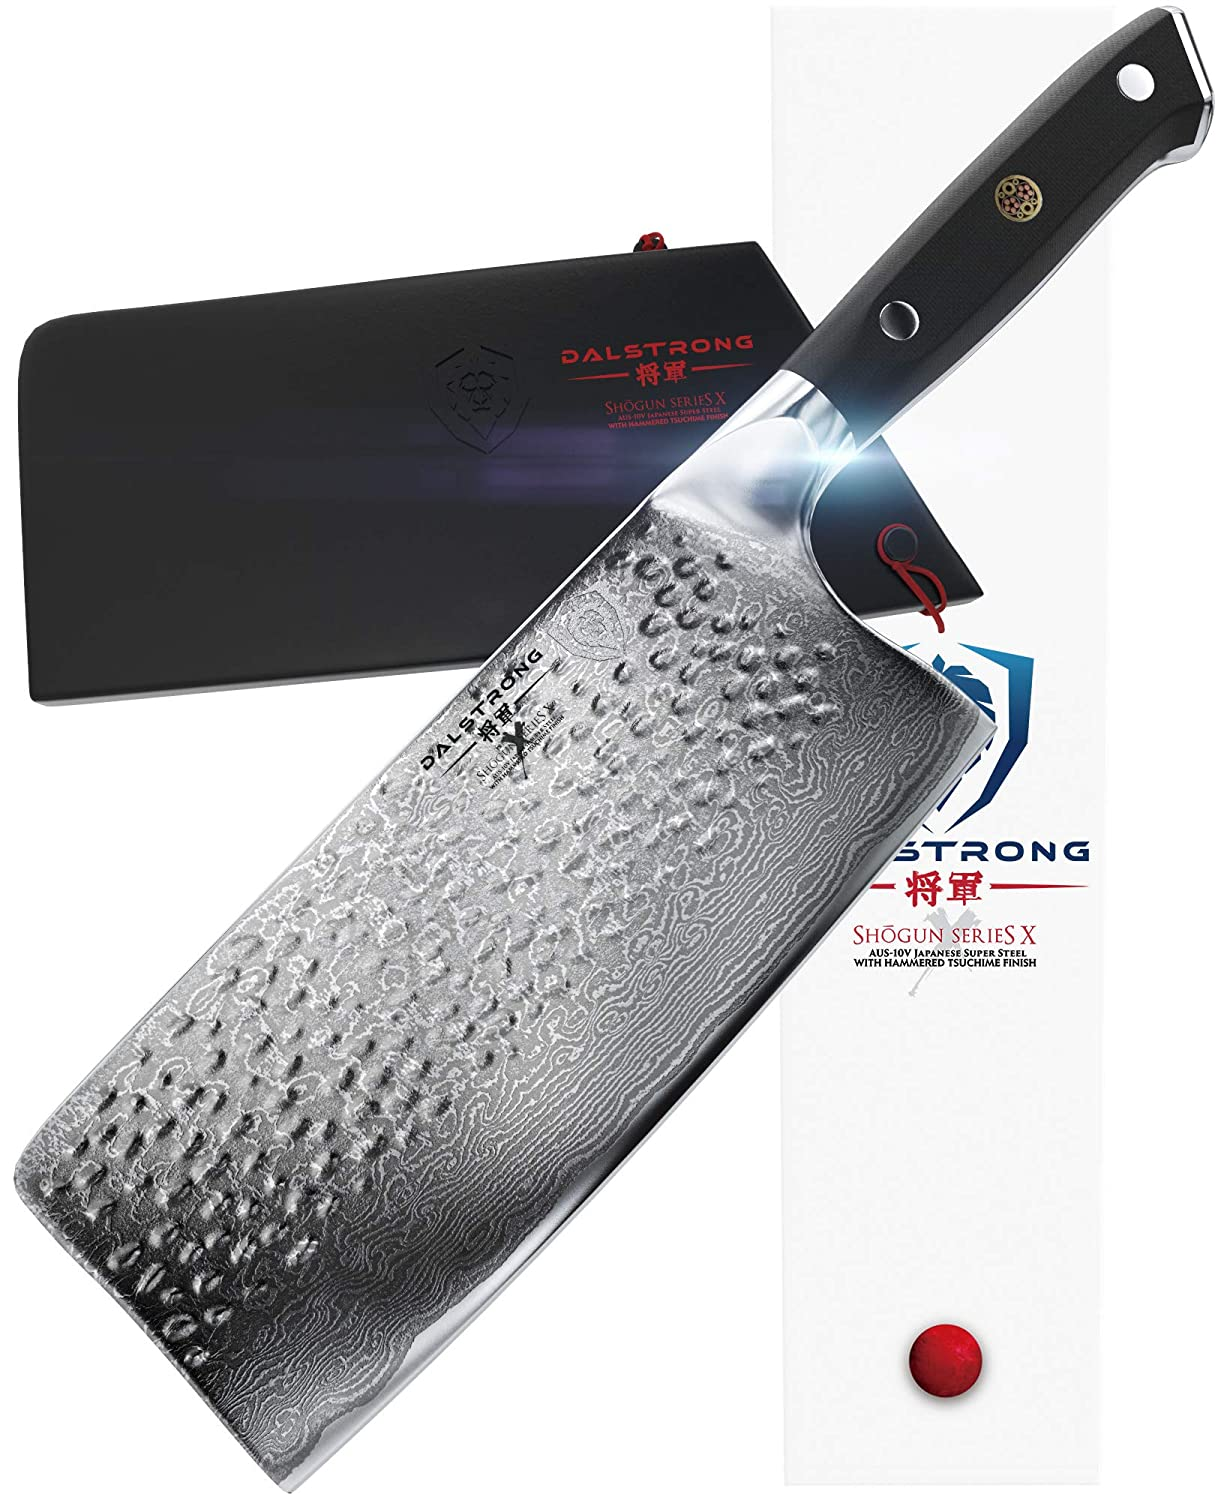 DALSTRONG Cleaver - Shogun Series X - AUS-10V- Vacuum Treated - 7 Hammered - Sheath Dalstrong Inc SS-X-7inch-Cleaver